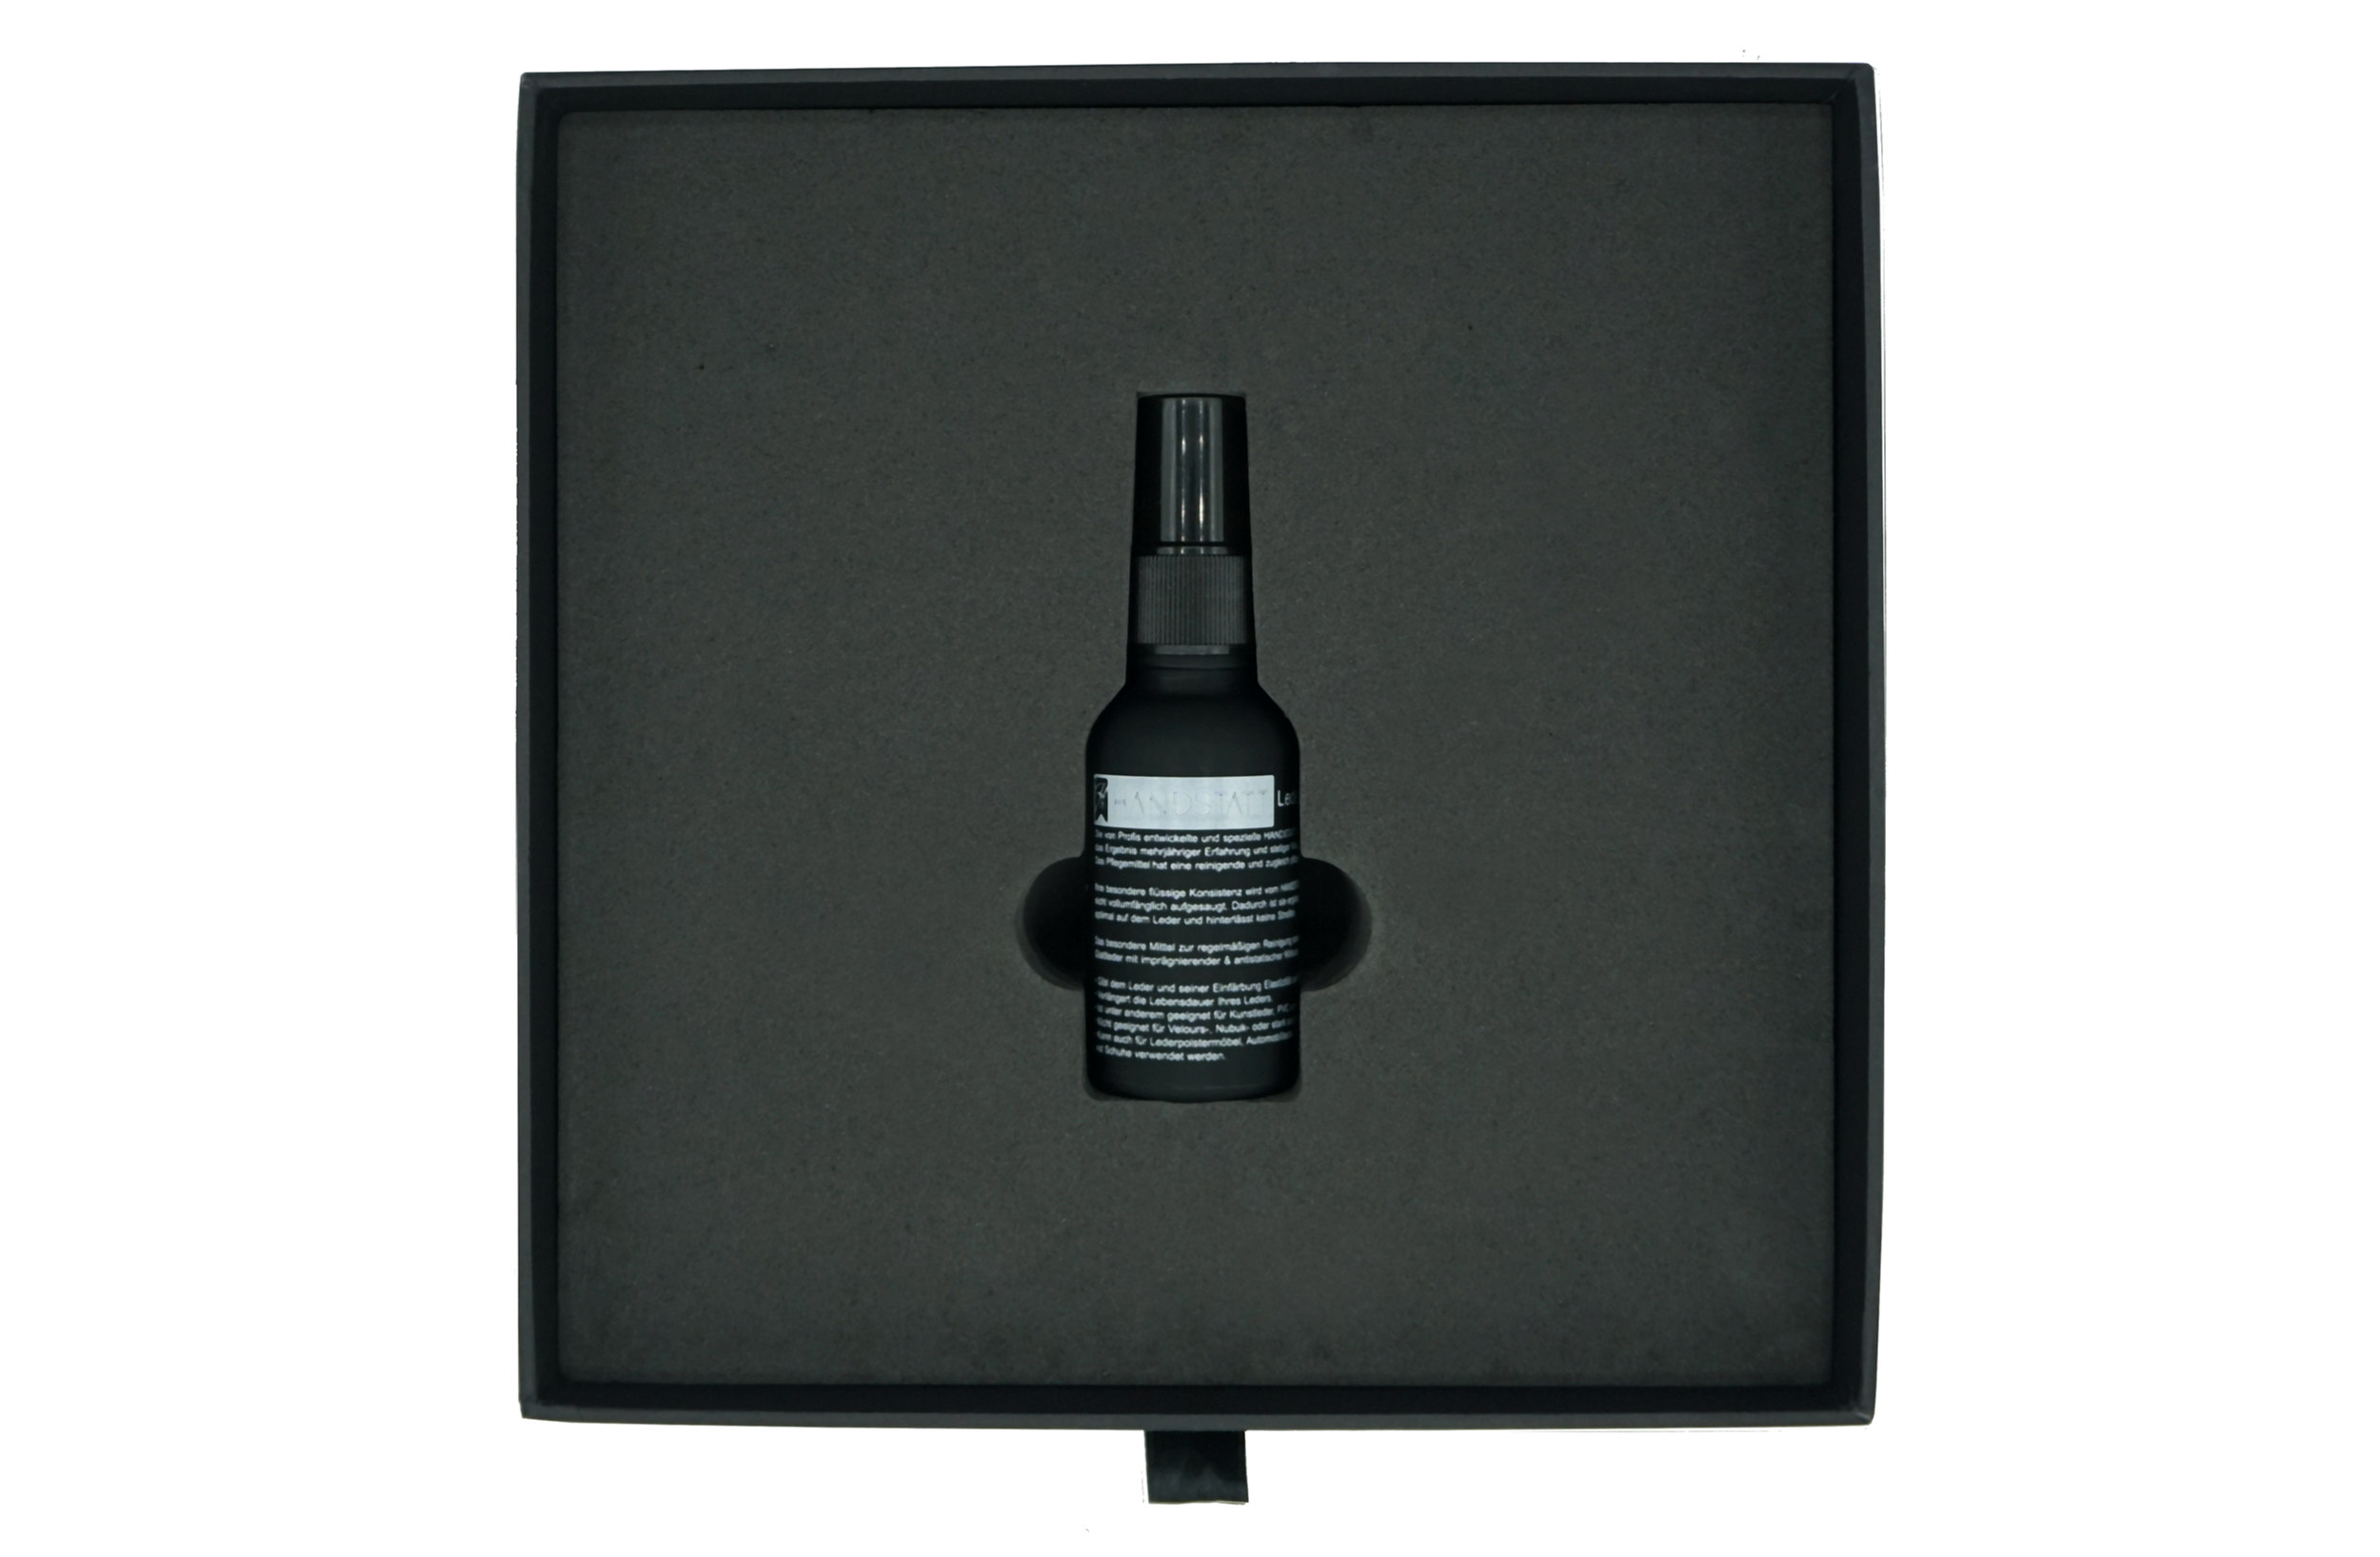 HANDSTATT<br/>Leather care spray